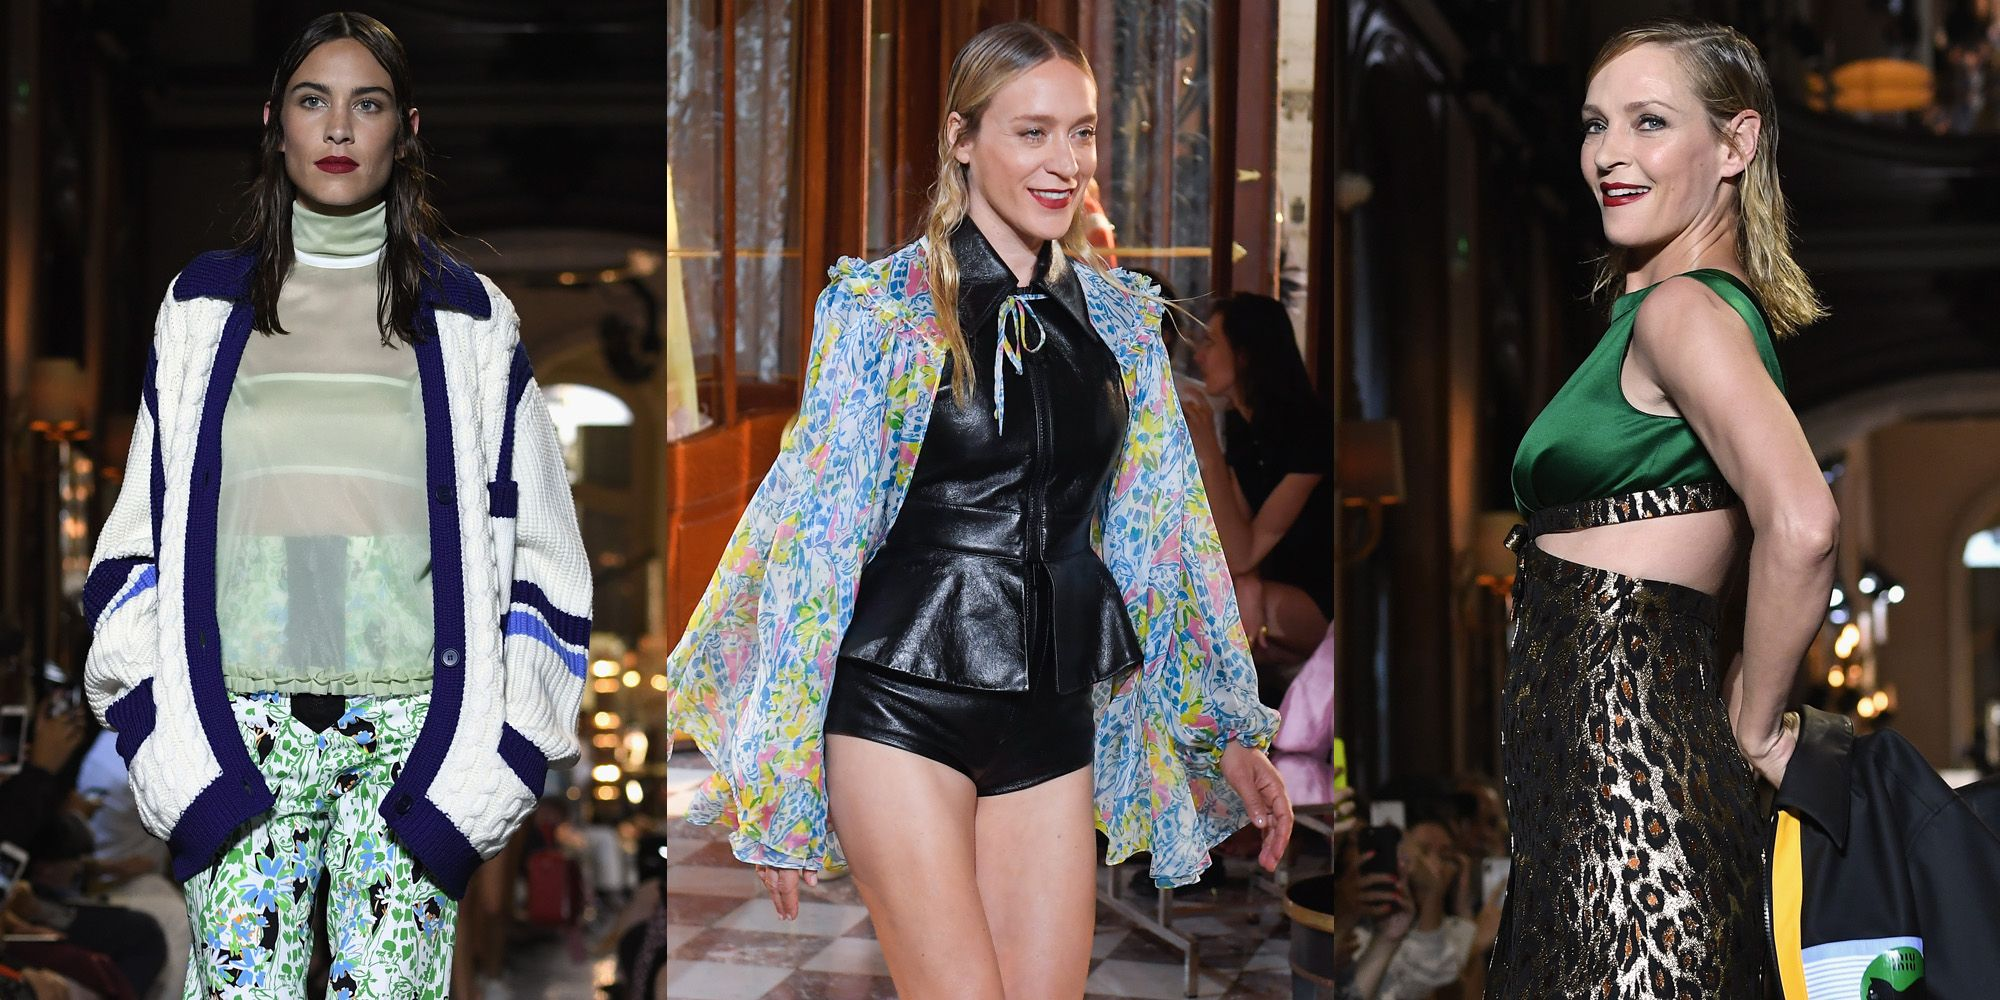 Miu Miu Cruise Resort 2019, celebrities, uma thurman, alexa chung, chloe sevigny